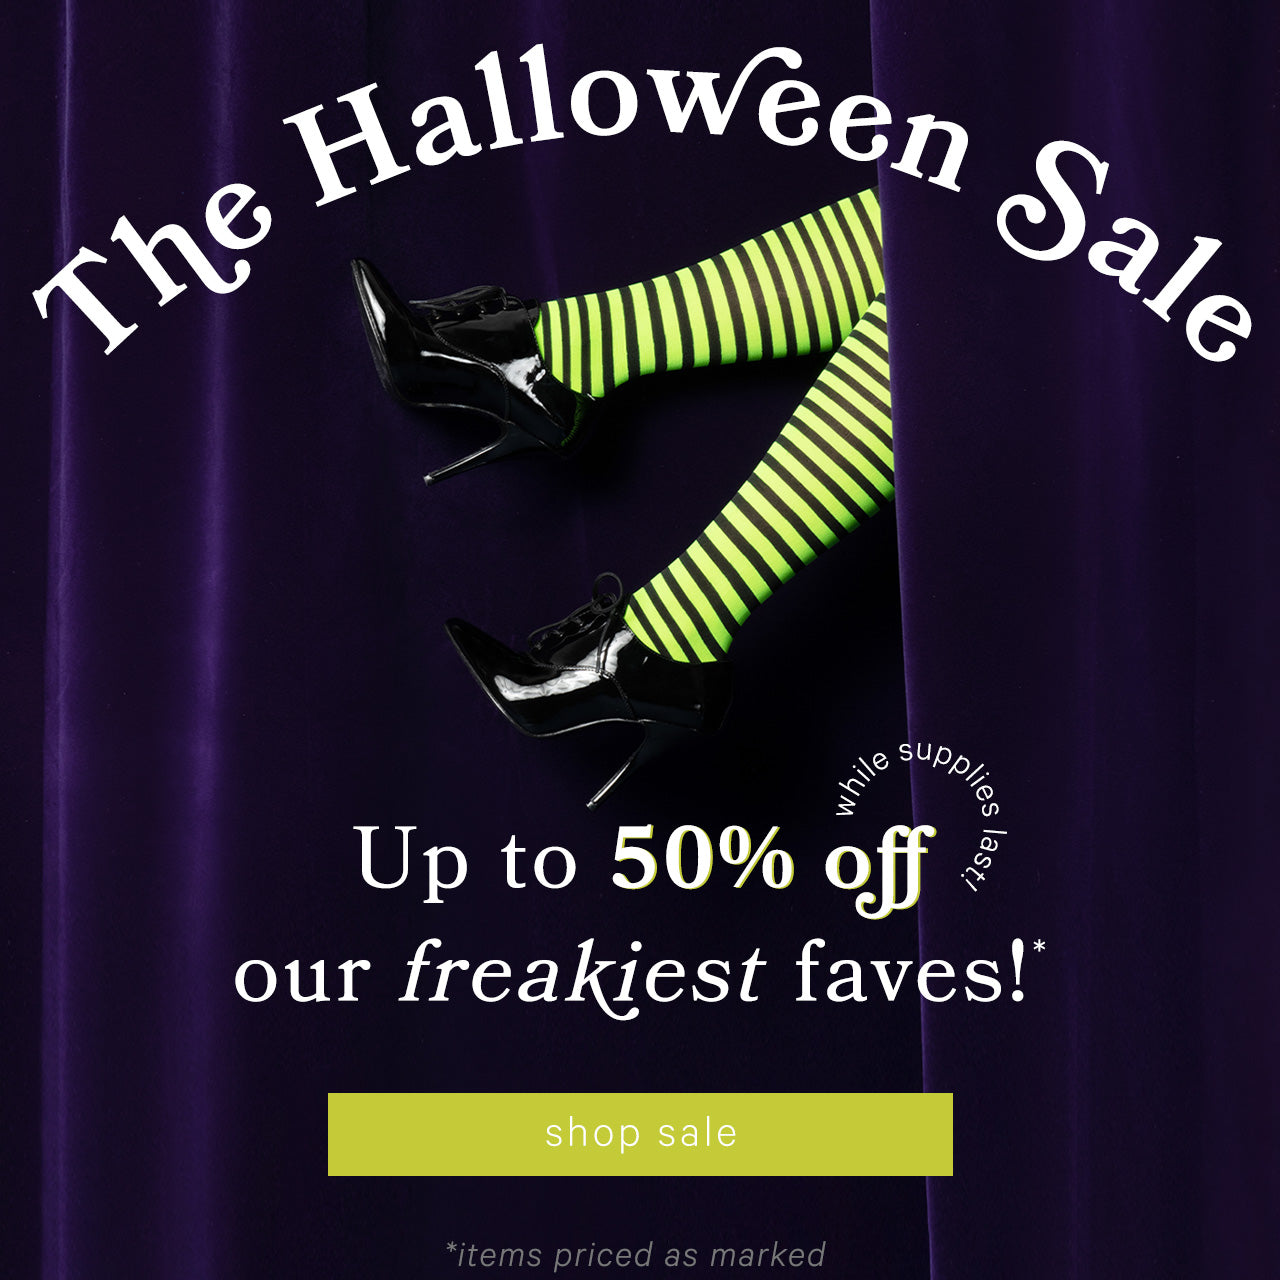 Unique Vintage — Halloween Sale! Up to 50% off our freakiest faves!